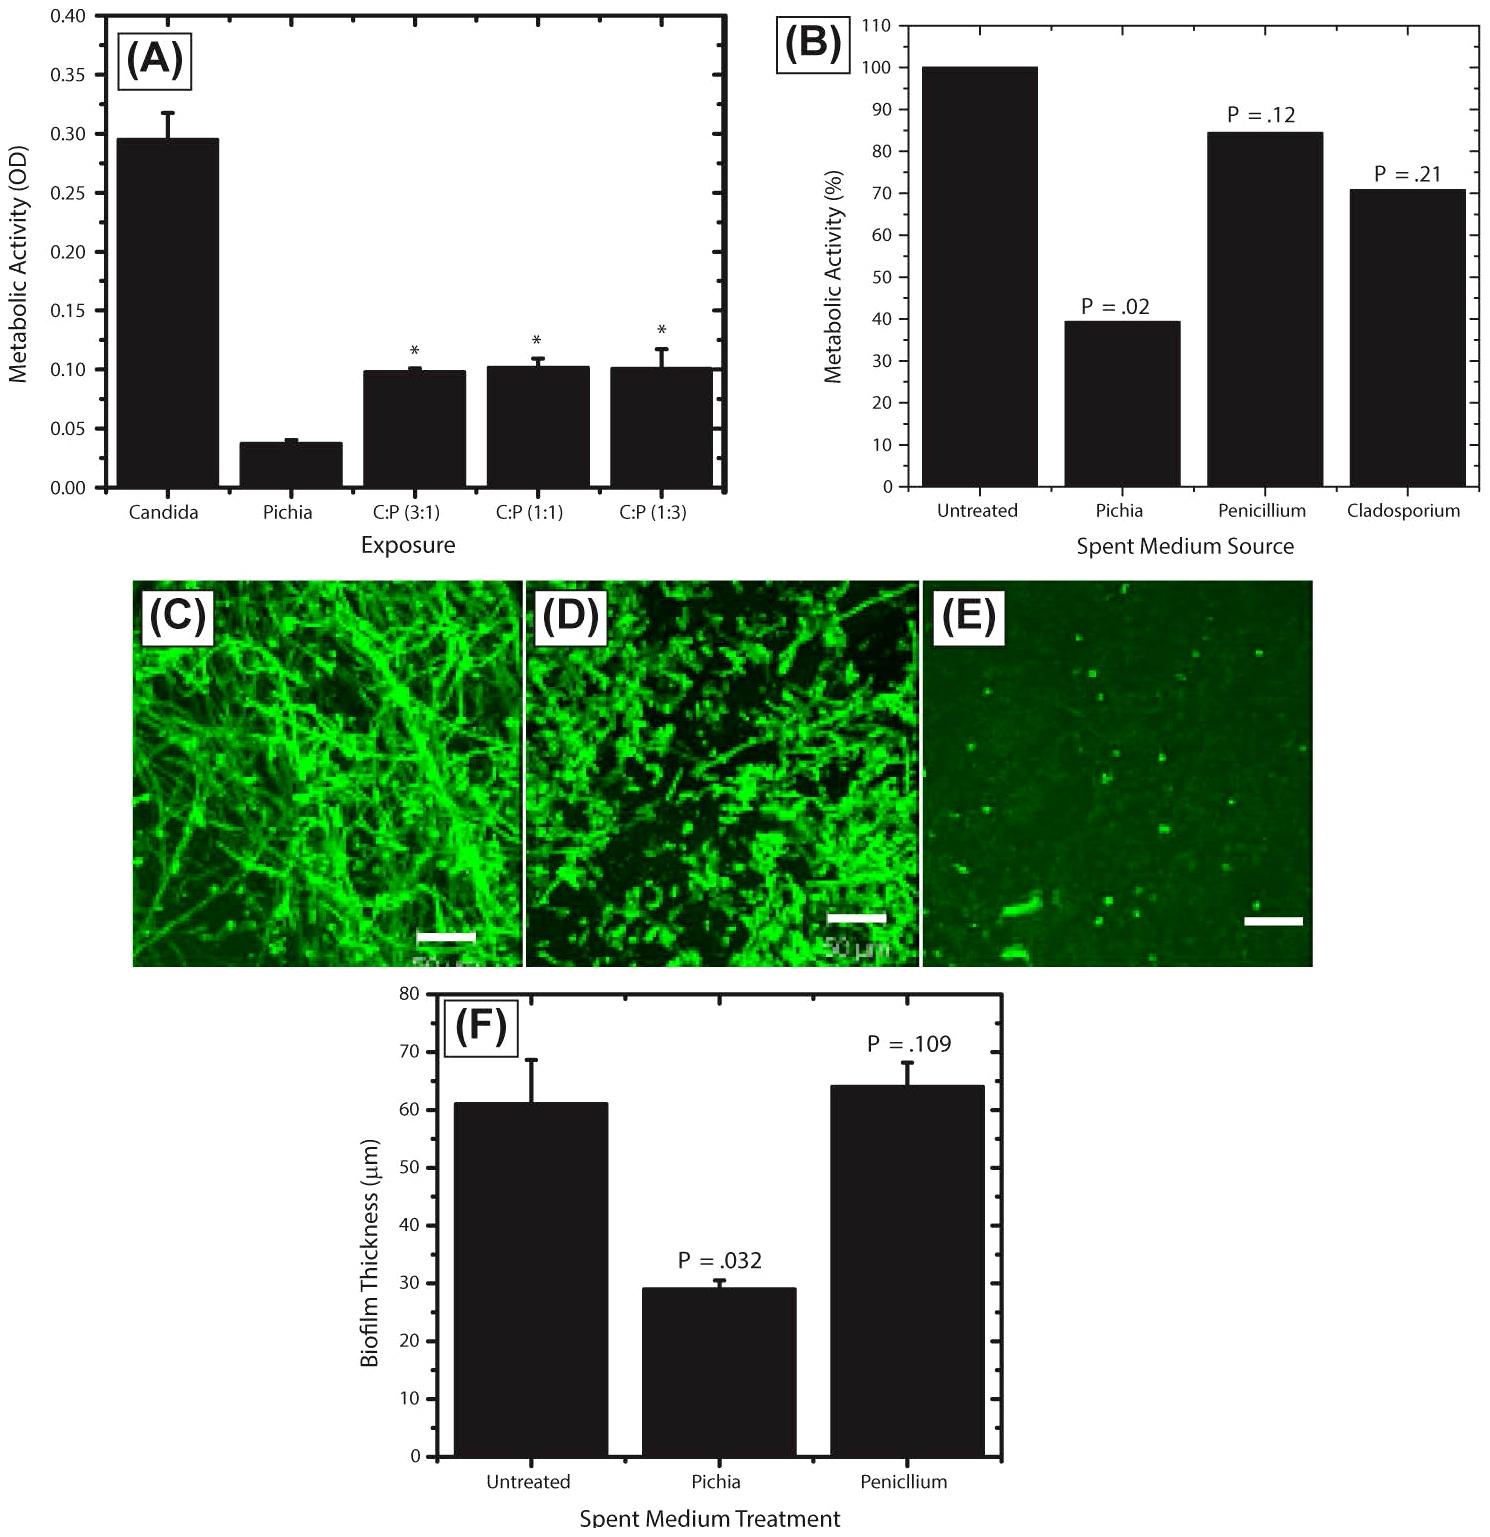 Activity of <i>Pichia</i> spent medium (PSM) against fungal biofilms.